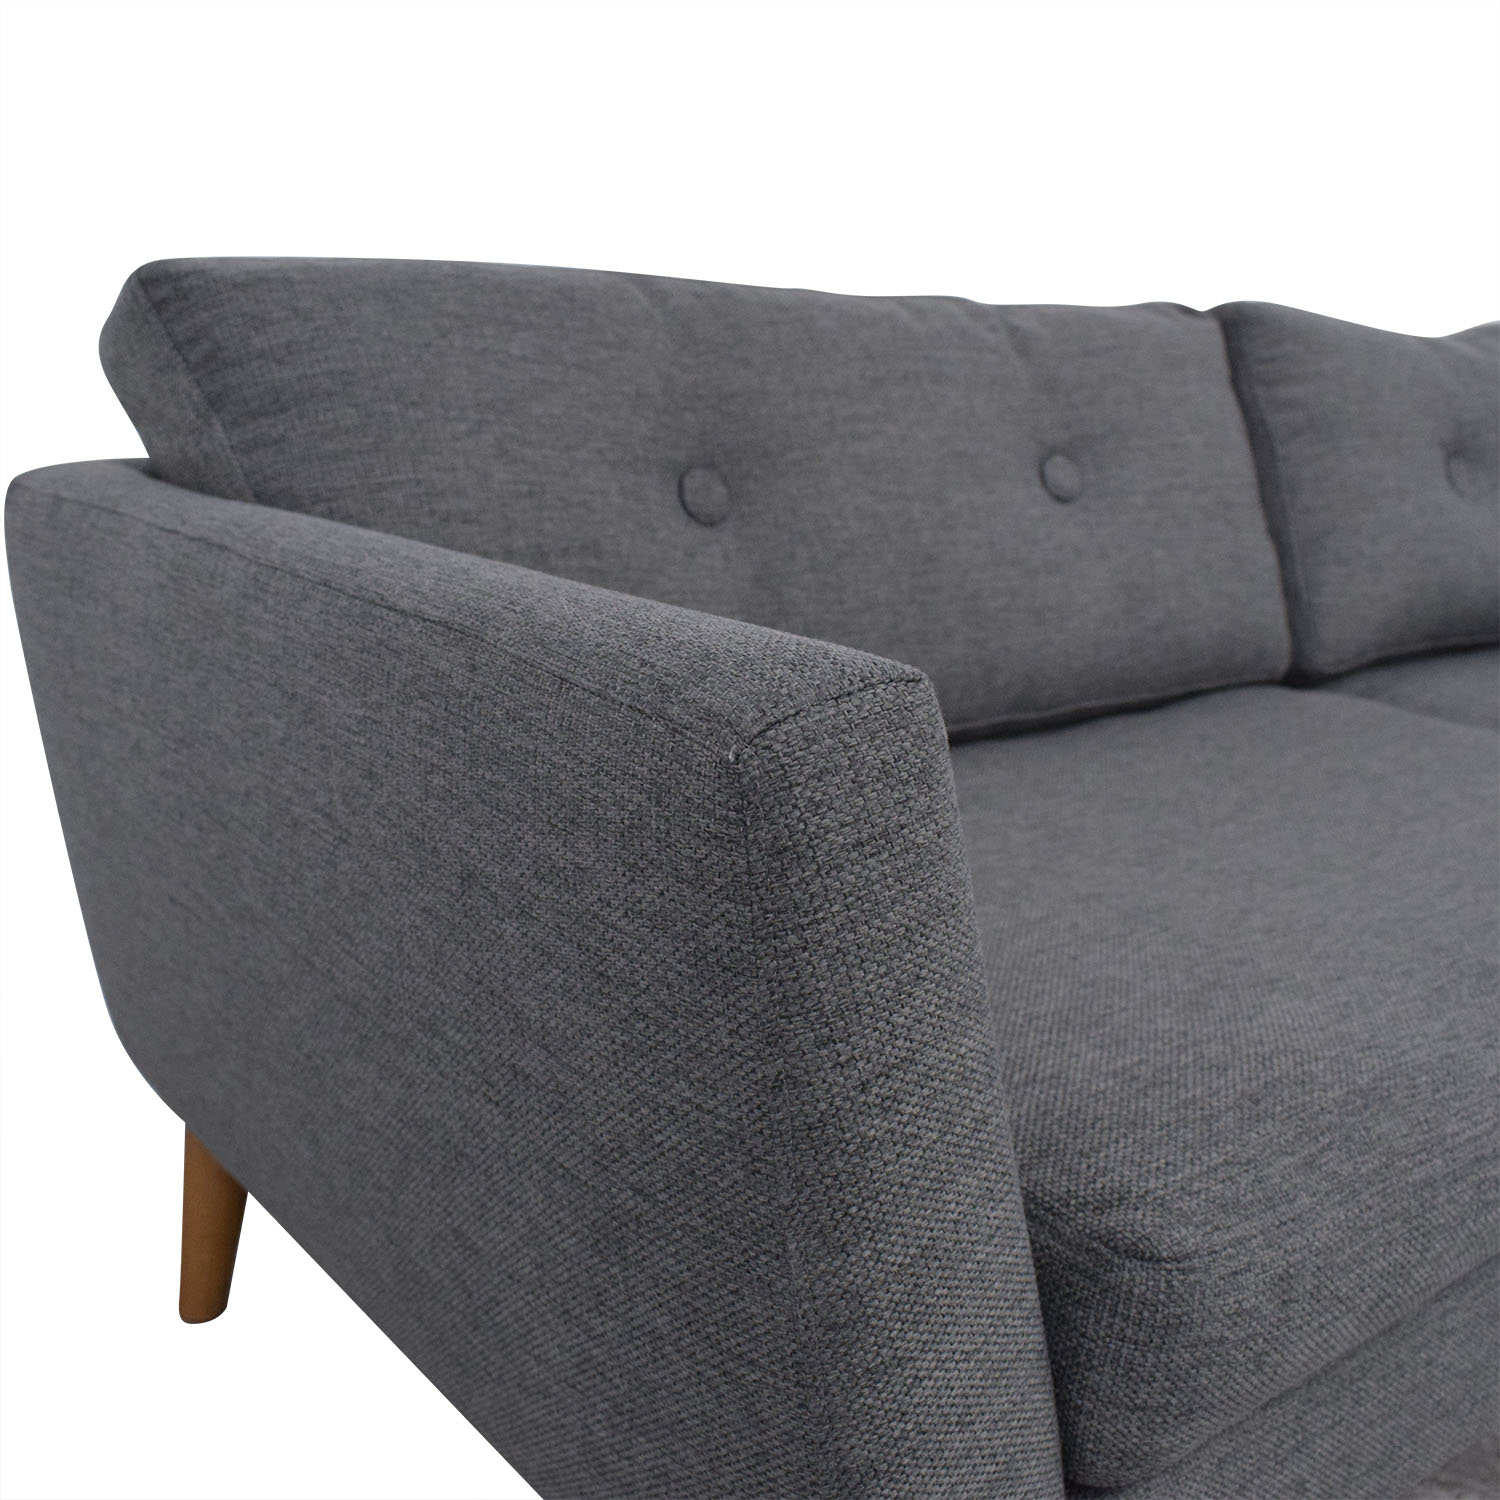 shop Article Article Two Cushion Sofa online